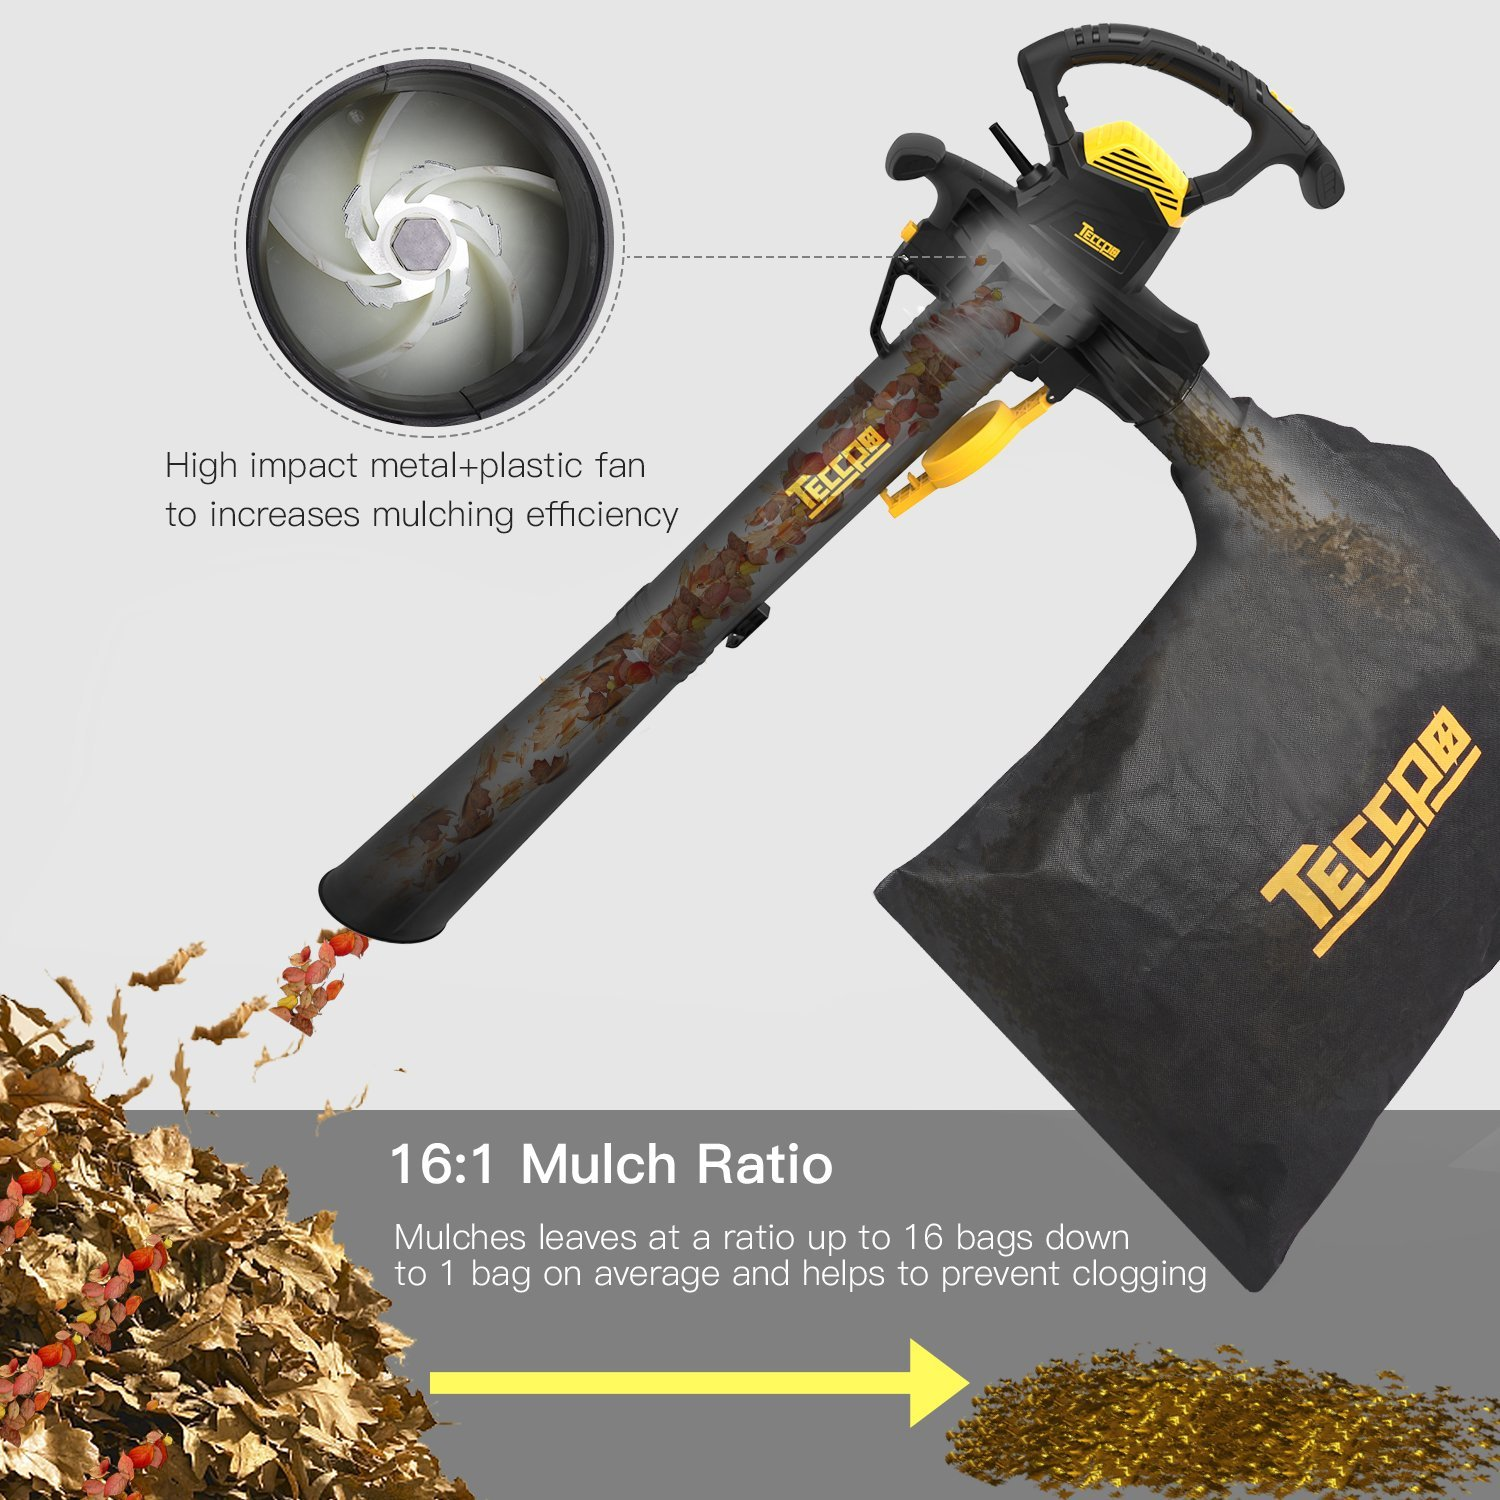 Leaf Blower Vacuum, TECCPO TABV01G 12-Amp 250MPH 410CFM 3 in 1 corded electric Two-Speed Sweeper/Vac/Mulcher, Plastic Impeller Metal Blade, Ideal for Lawn and Garden by TECCPO (Image #4)